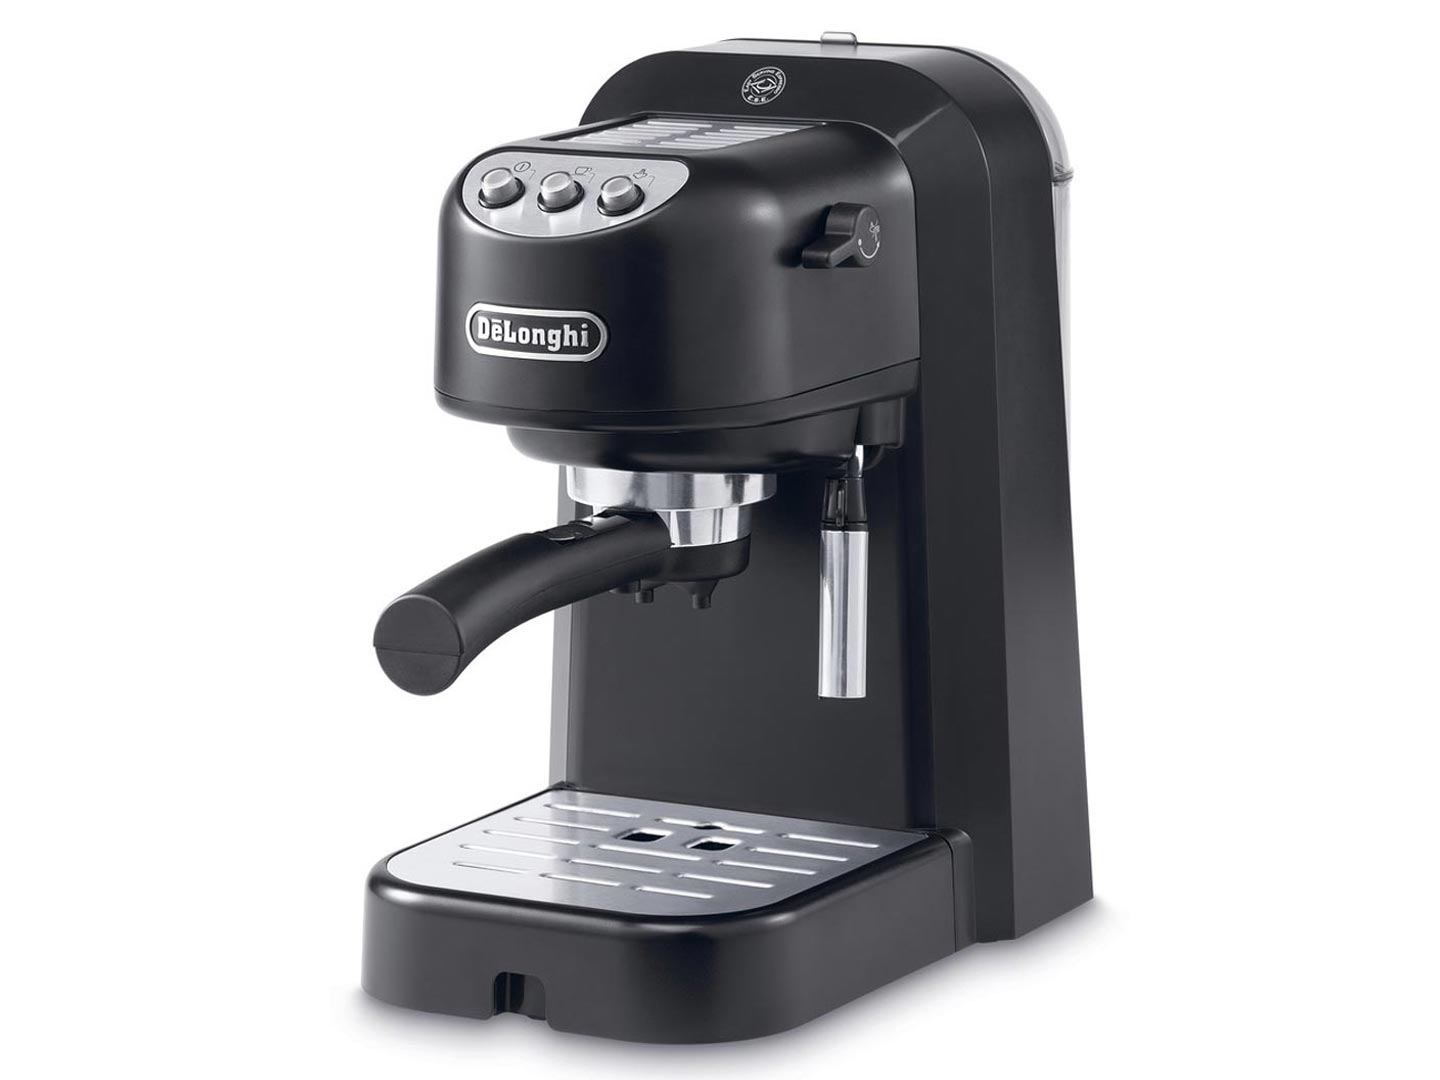 EC 251.B Delonghi France